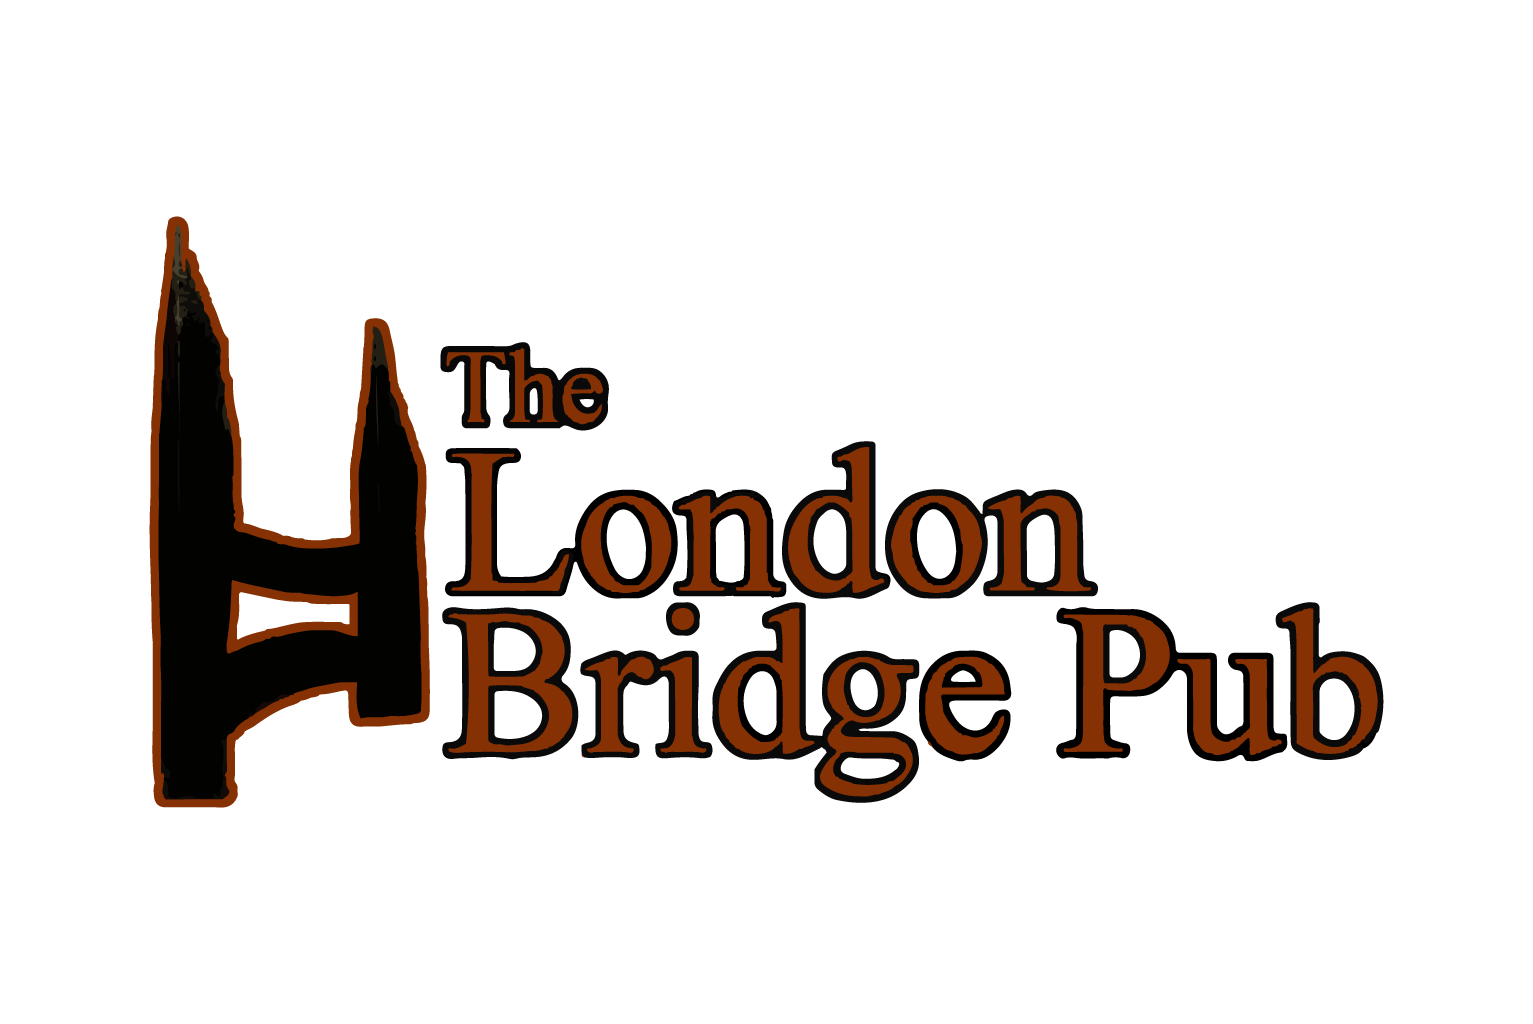 LONDON BRIDGE PUB